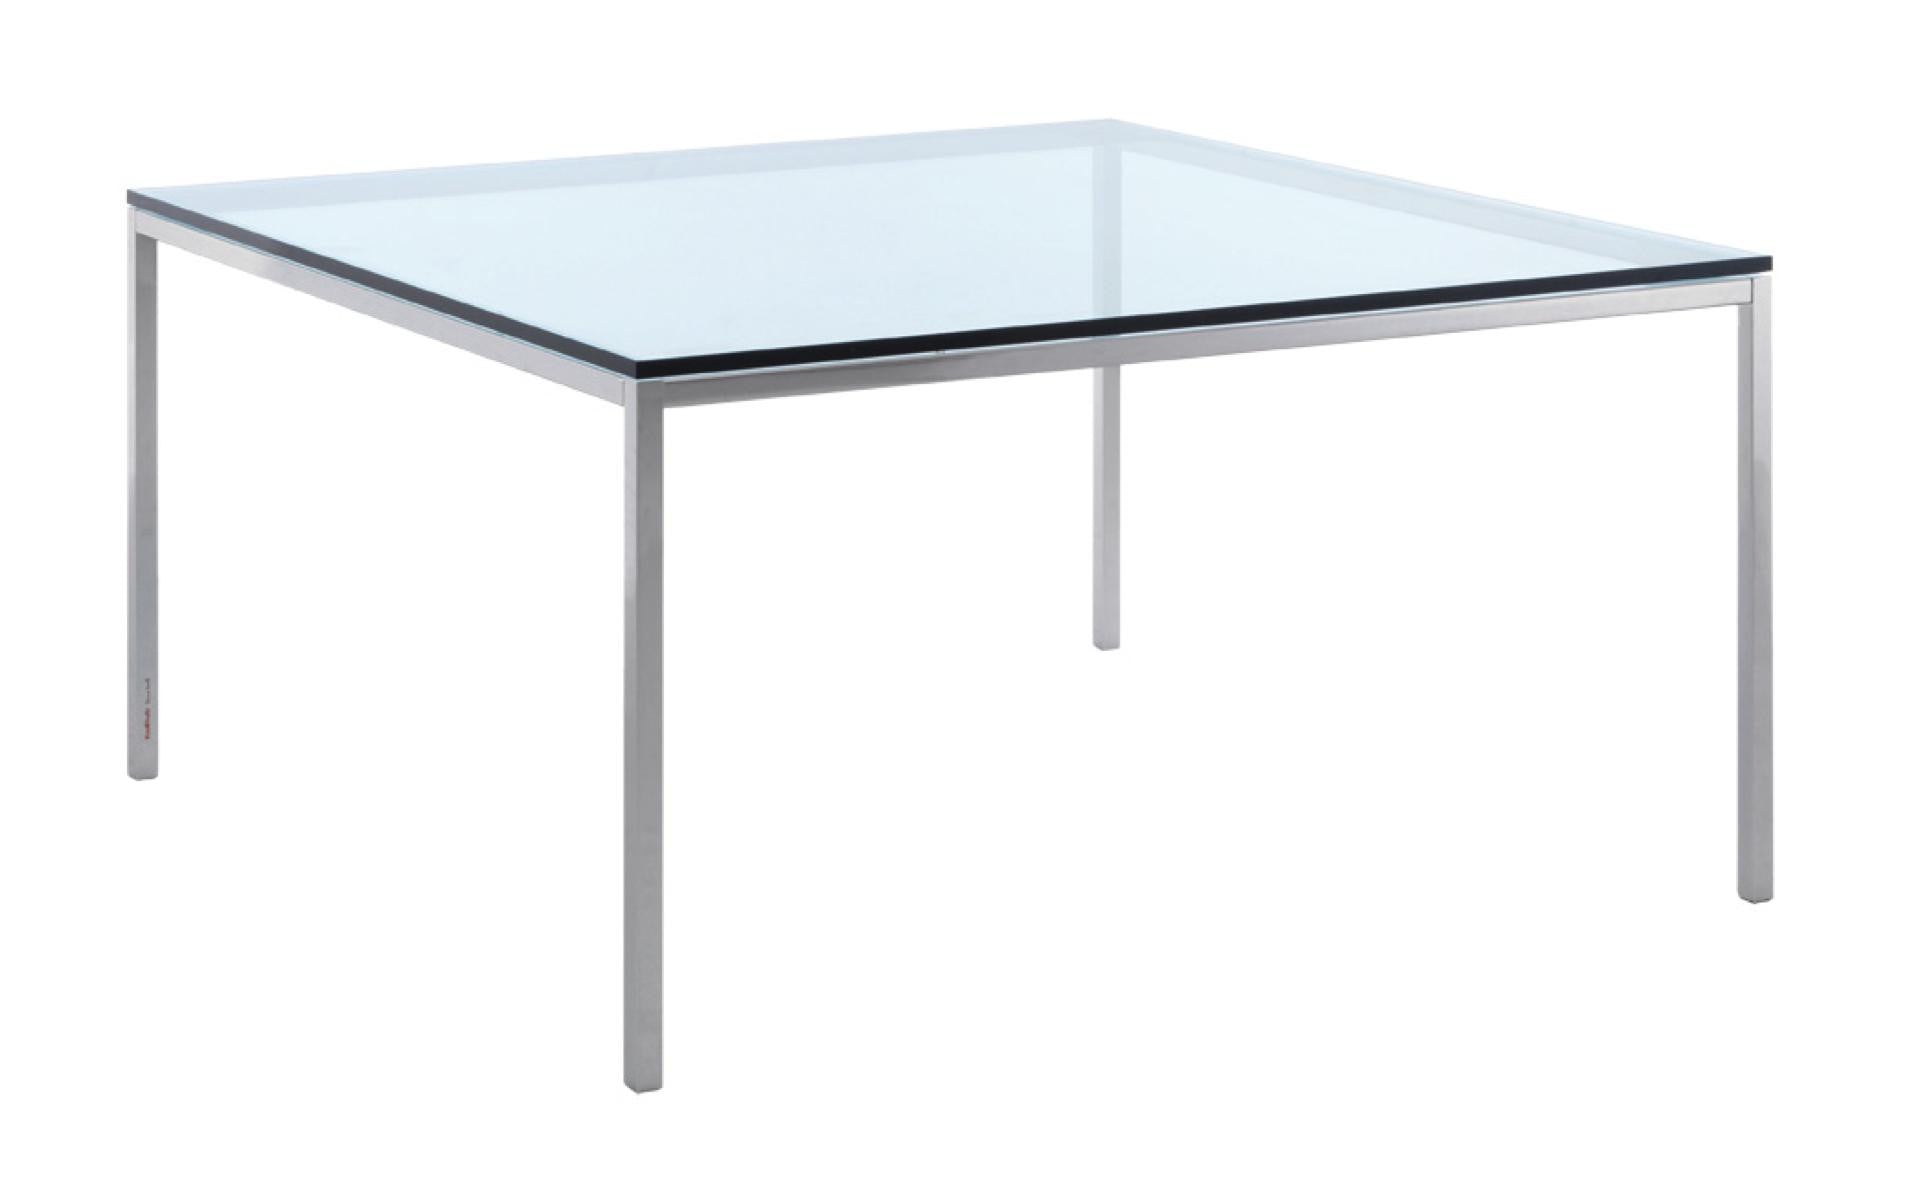 Florence Knoll Dining Table Square